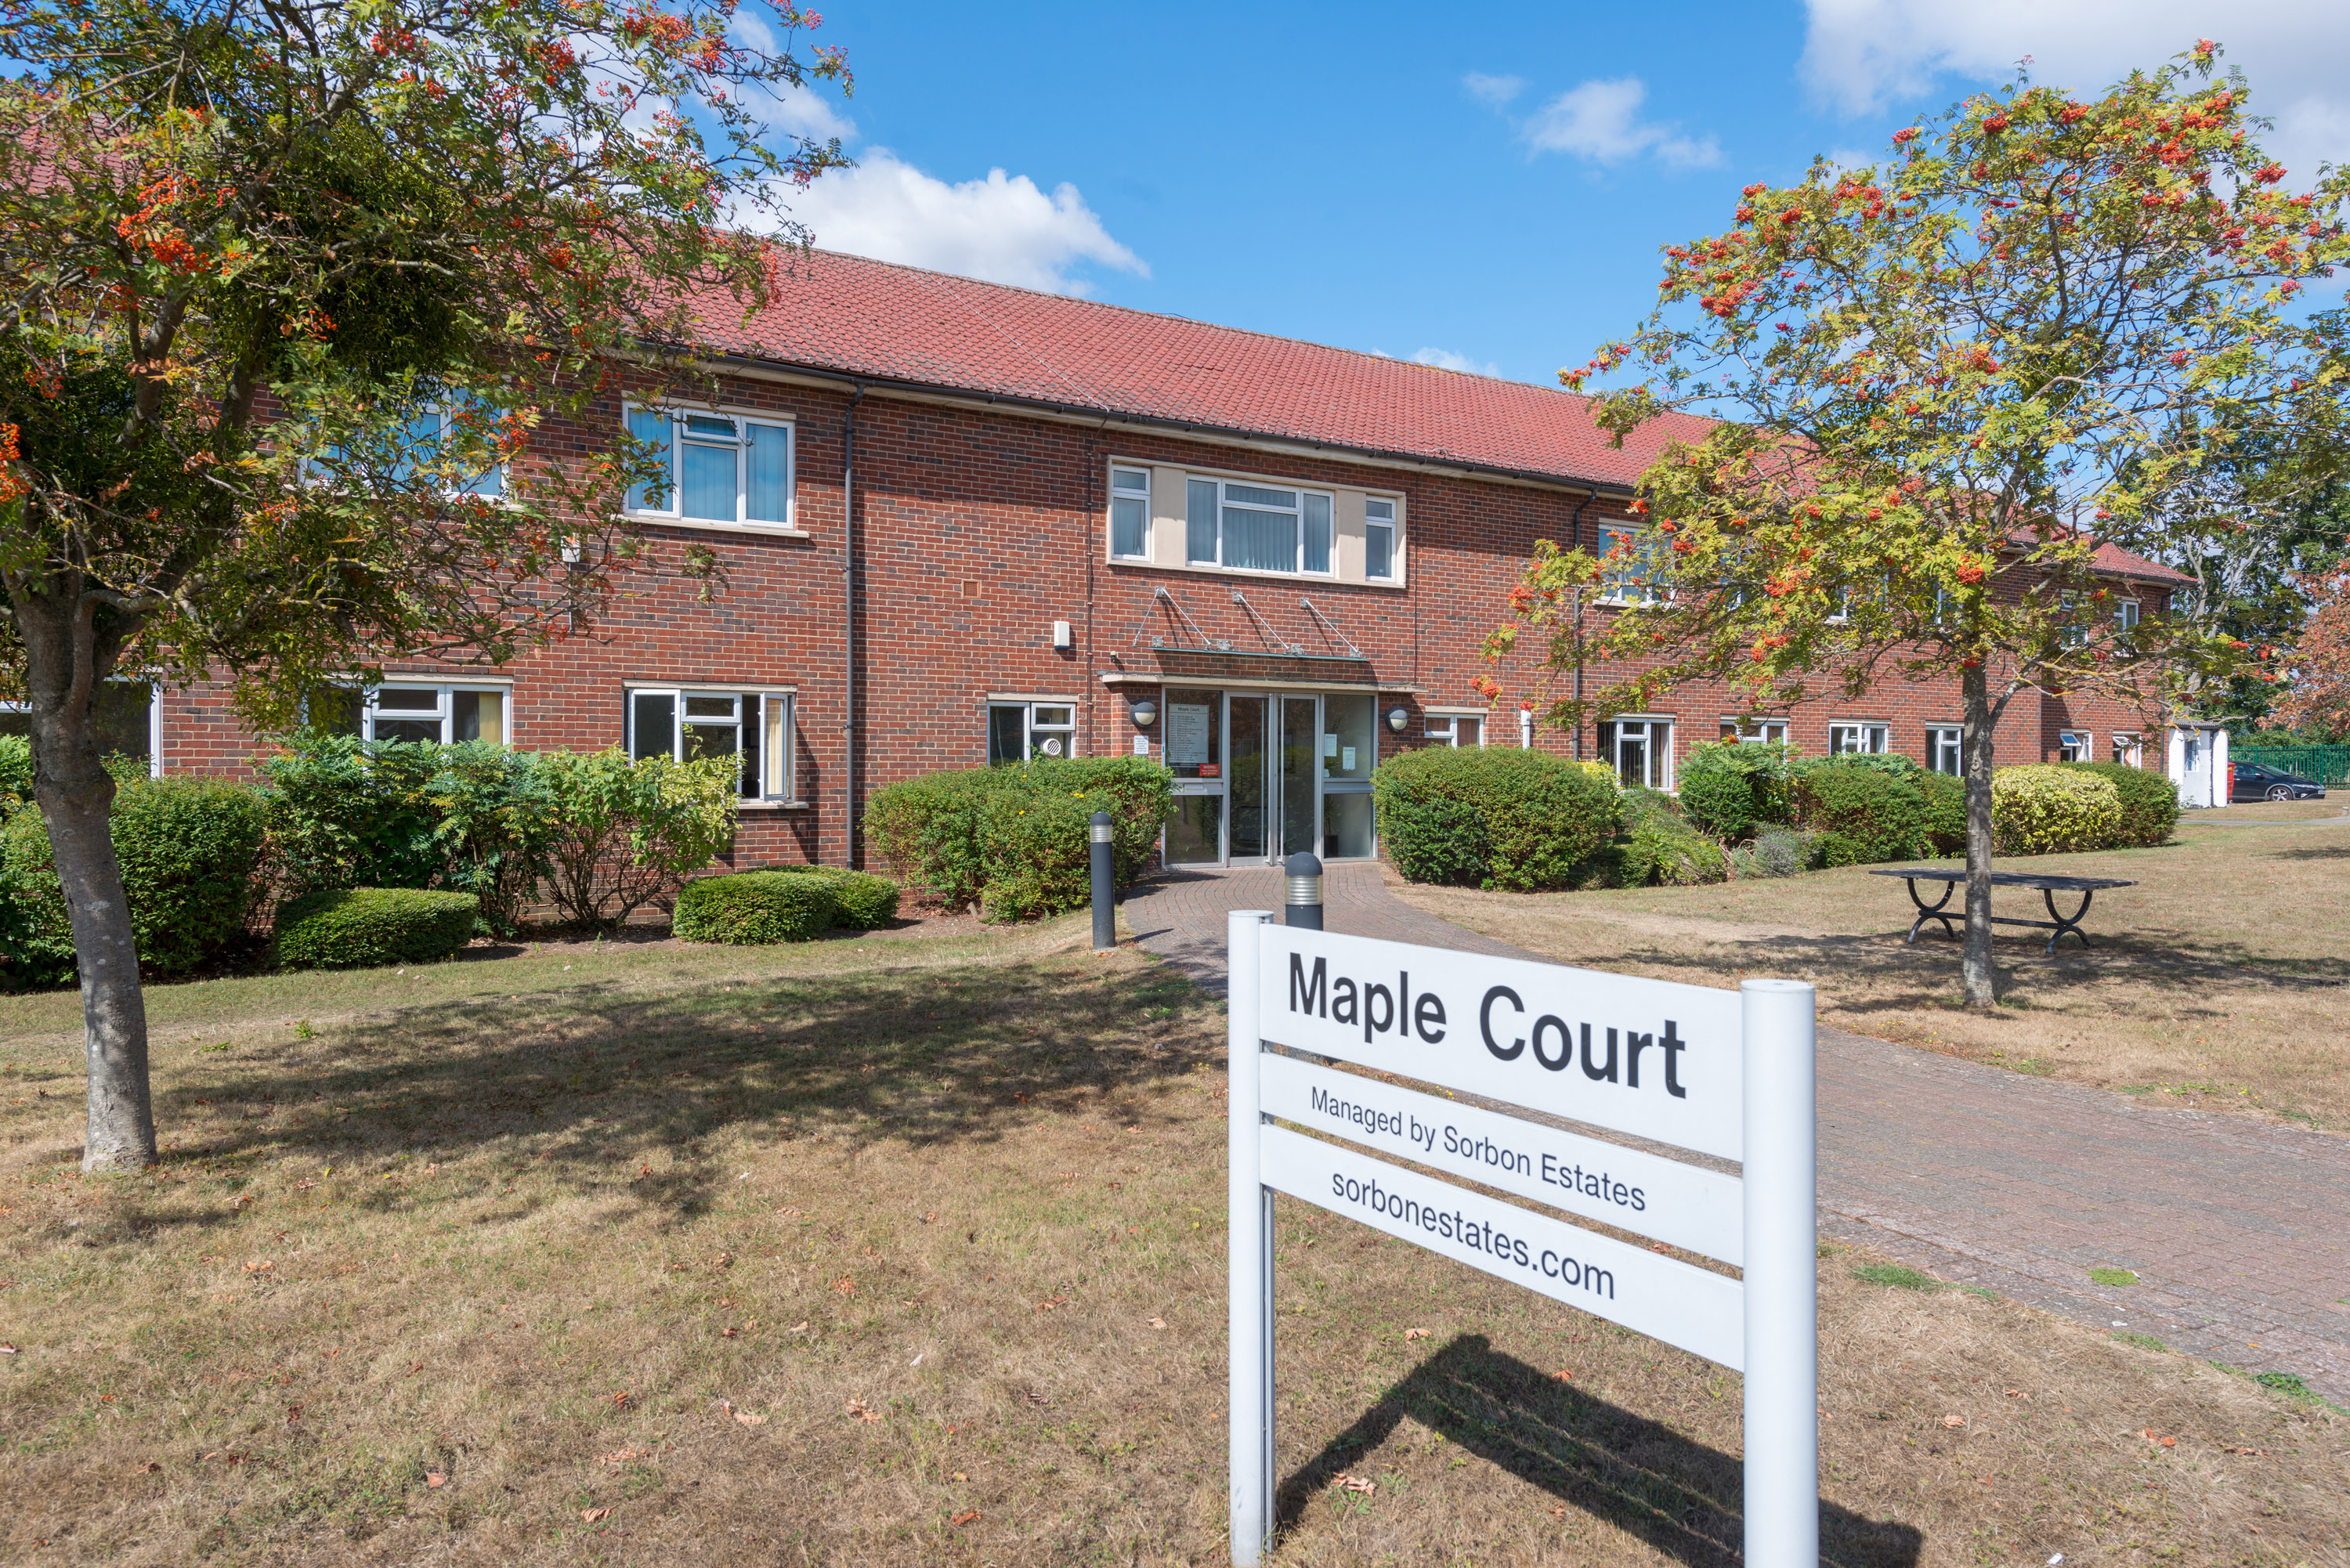 ( Office ) - Business Park for rent in Maidenhead. From Kempton Carr Croft Maidenhead